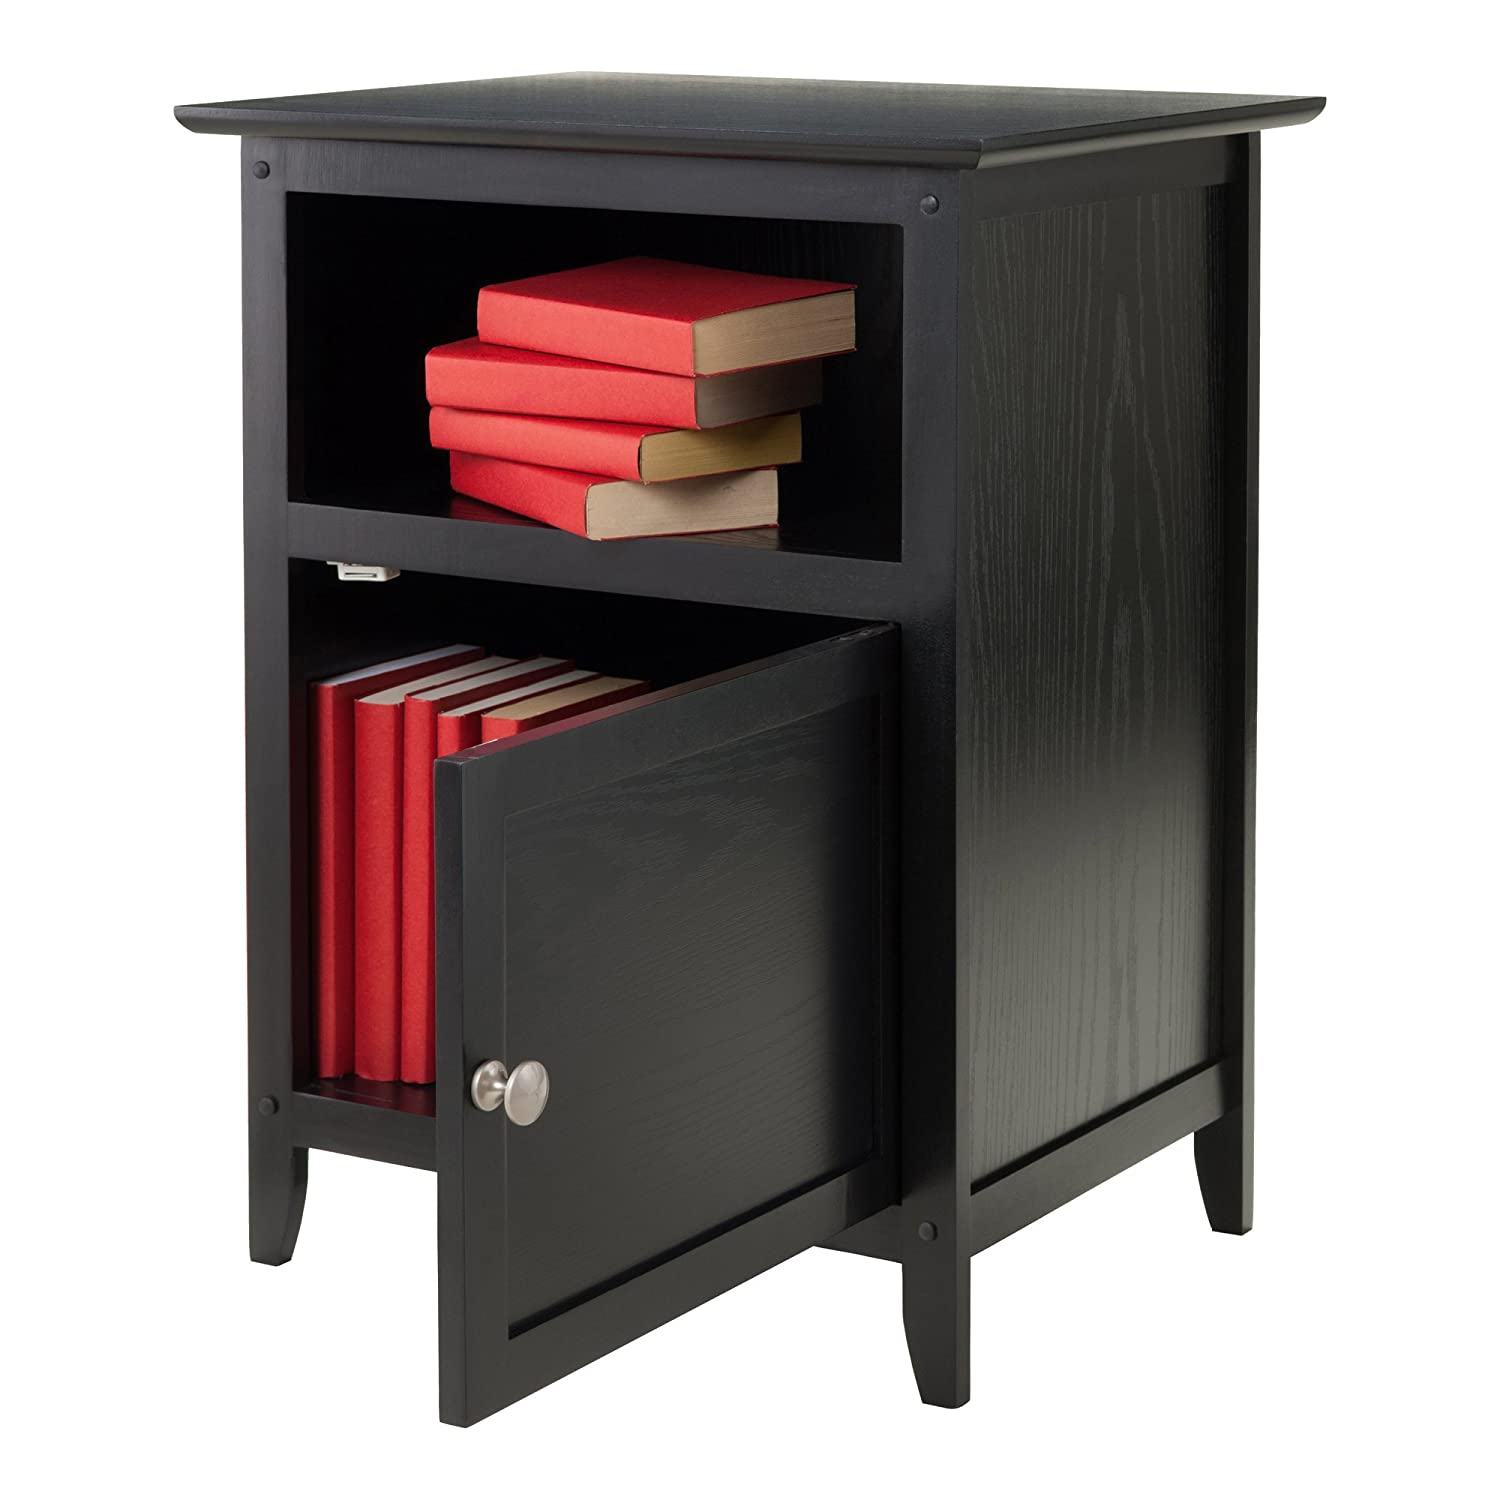 Night Stand With Door And Shelf, Black:  Kitchen & Dining